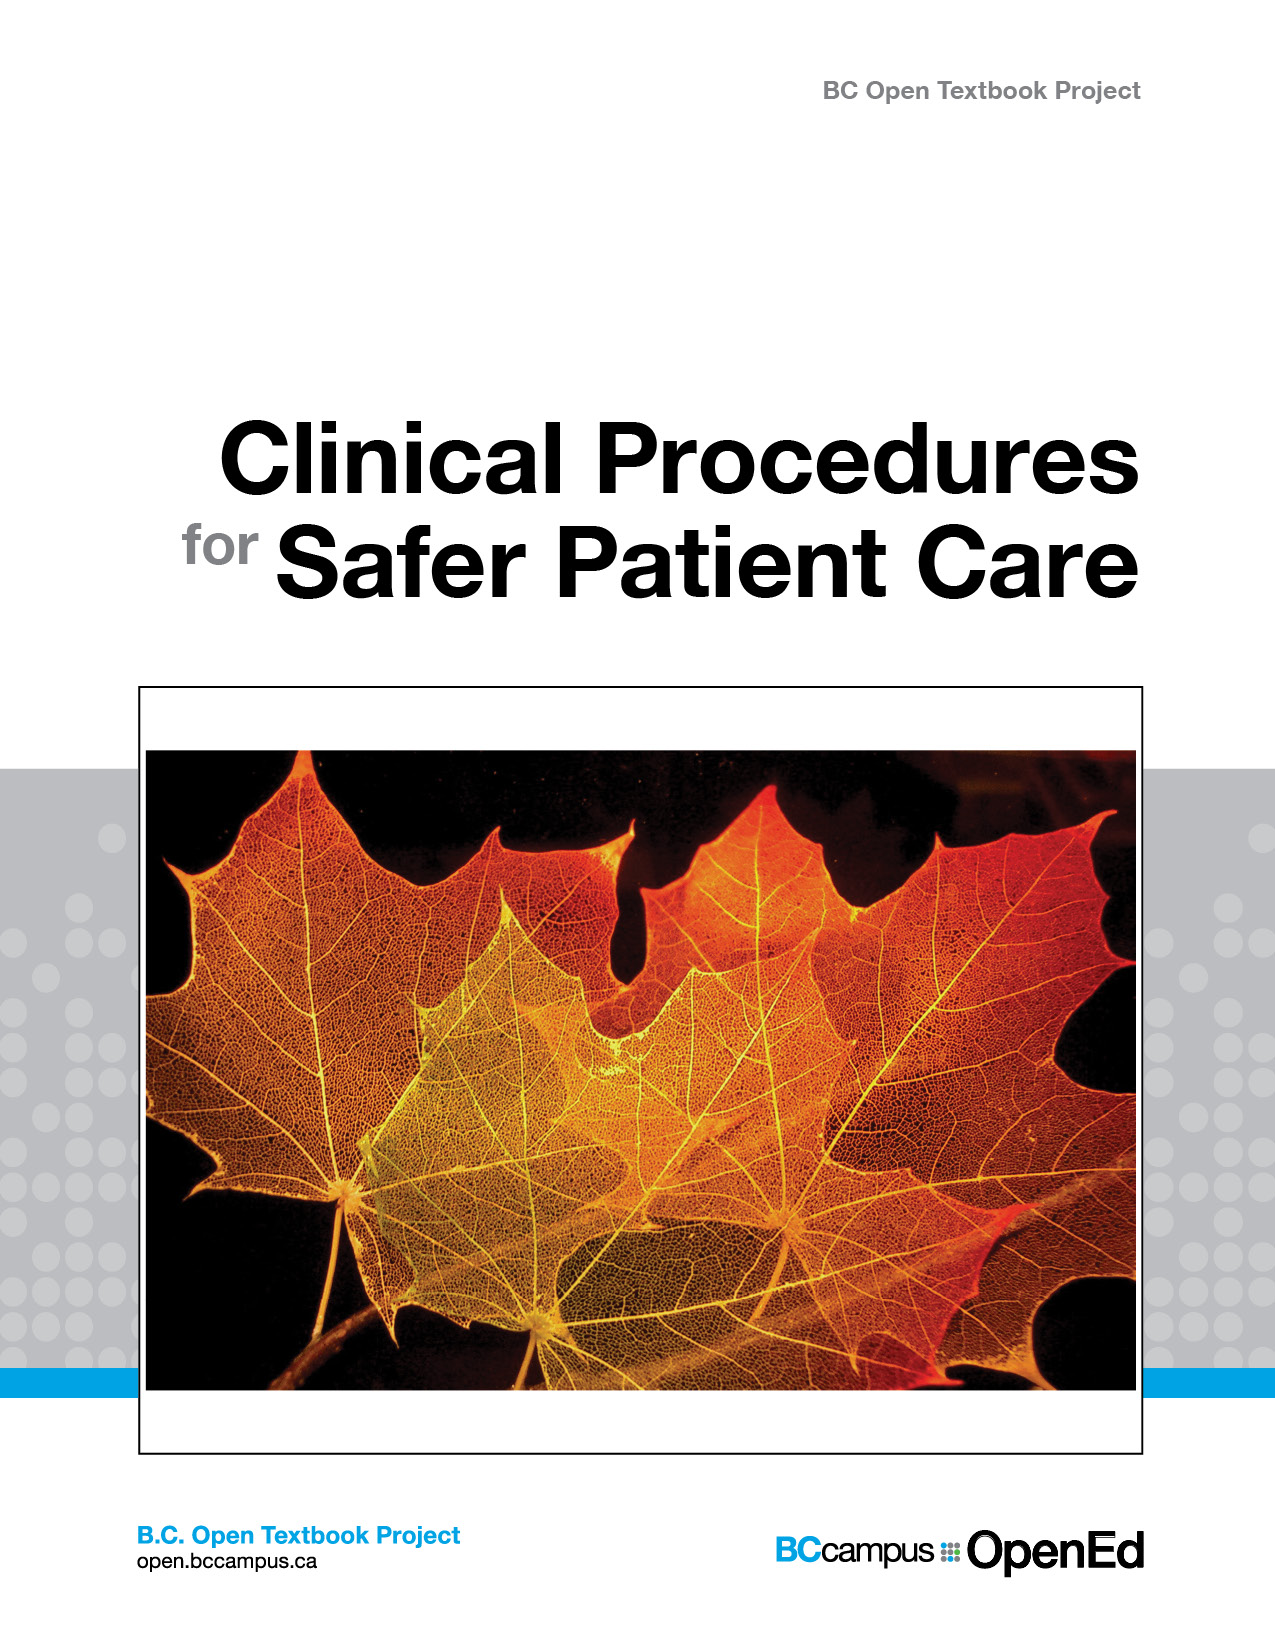 Clinical Procedures for Safer Patient Care icon